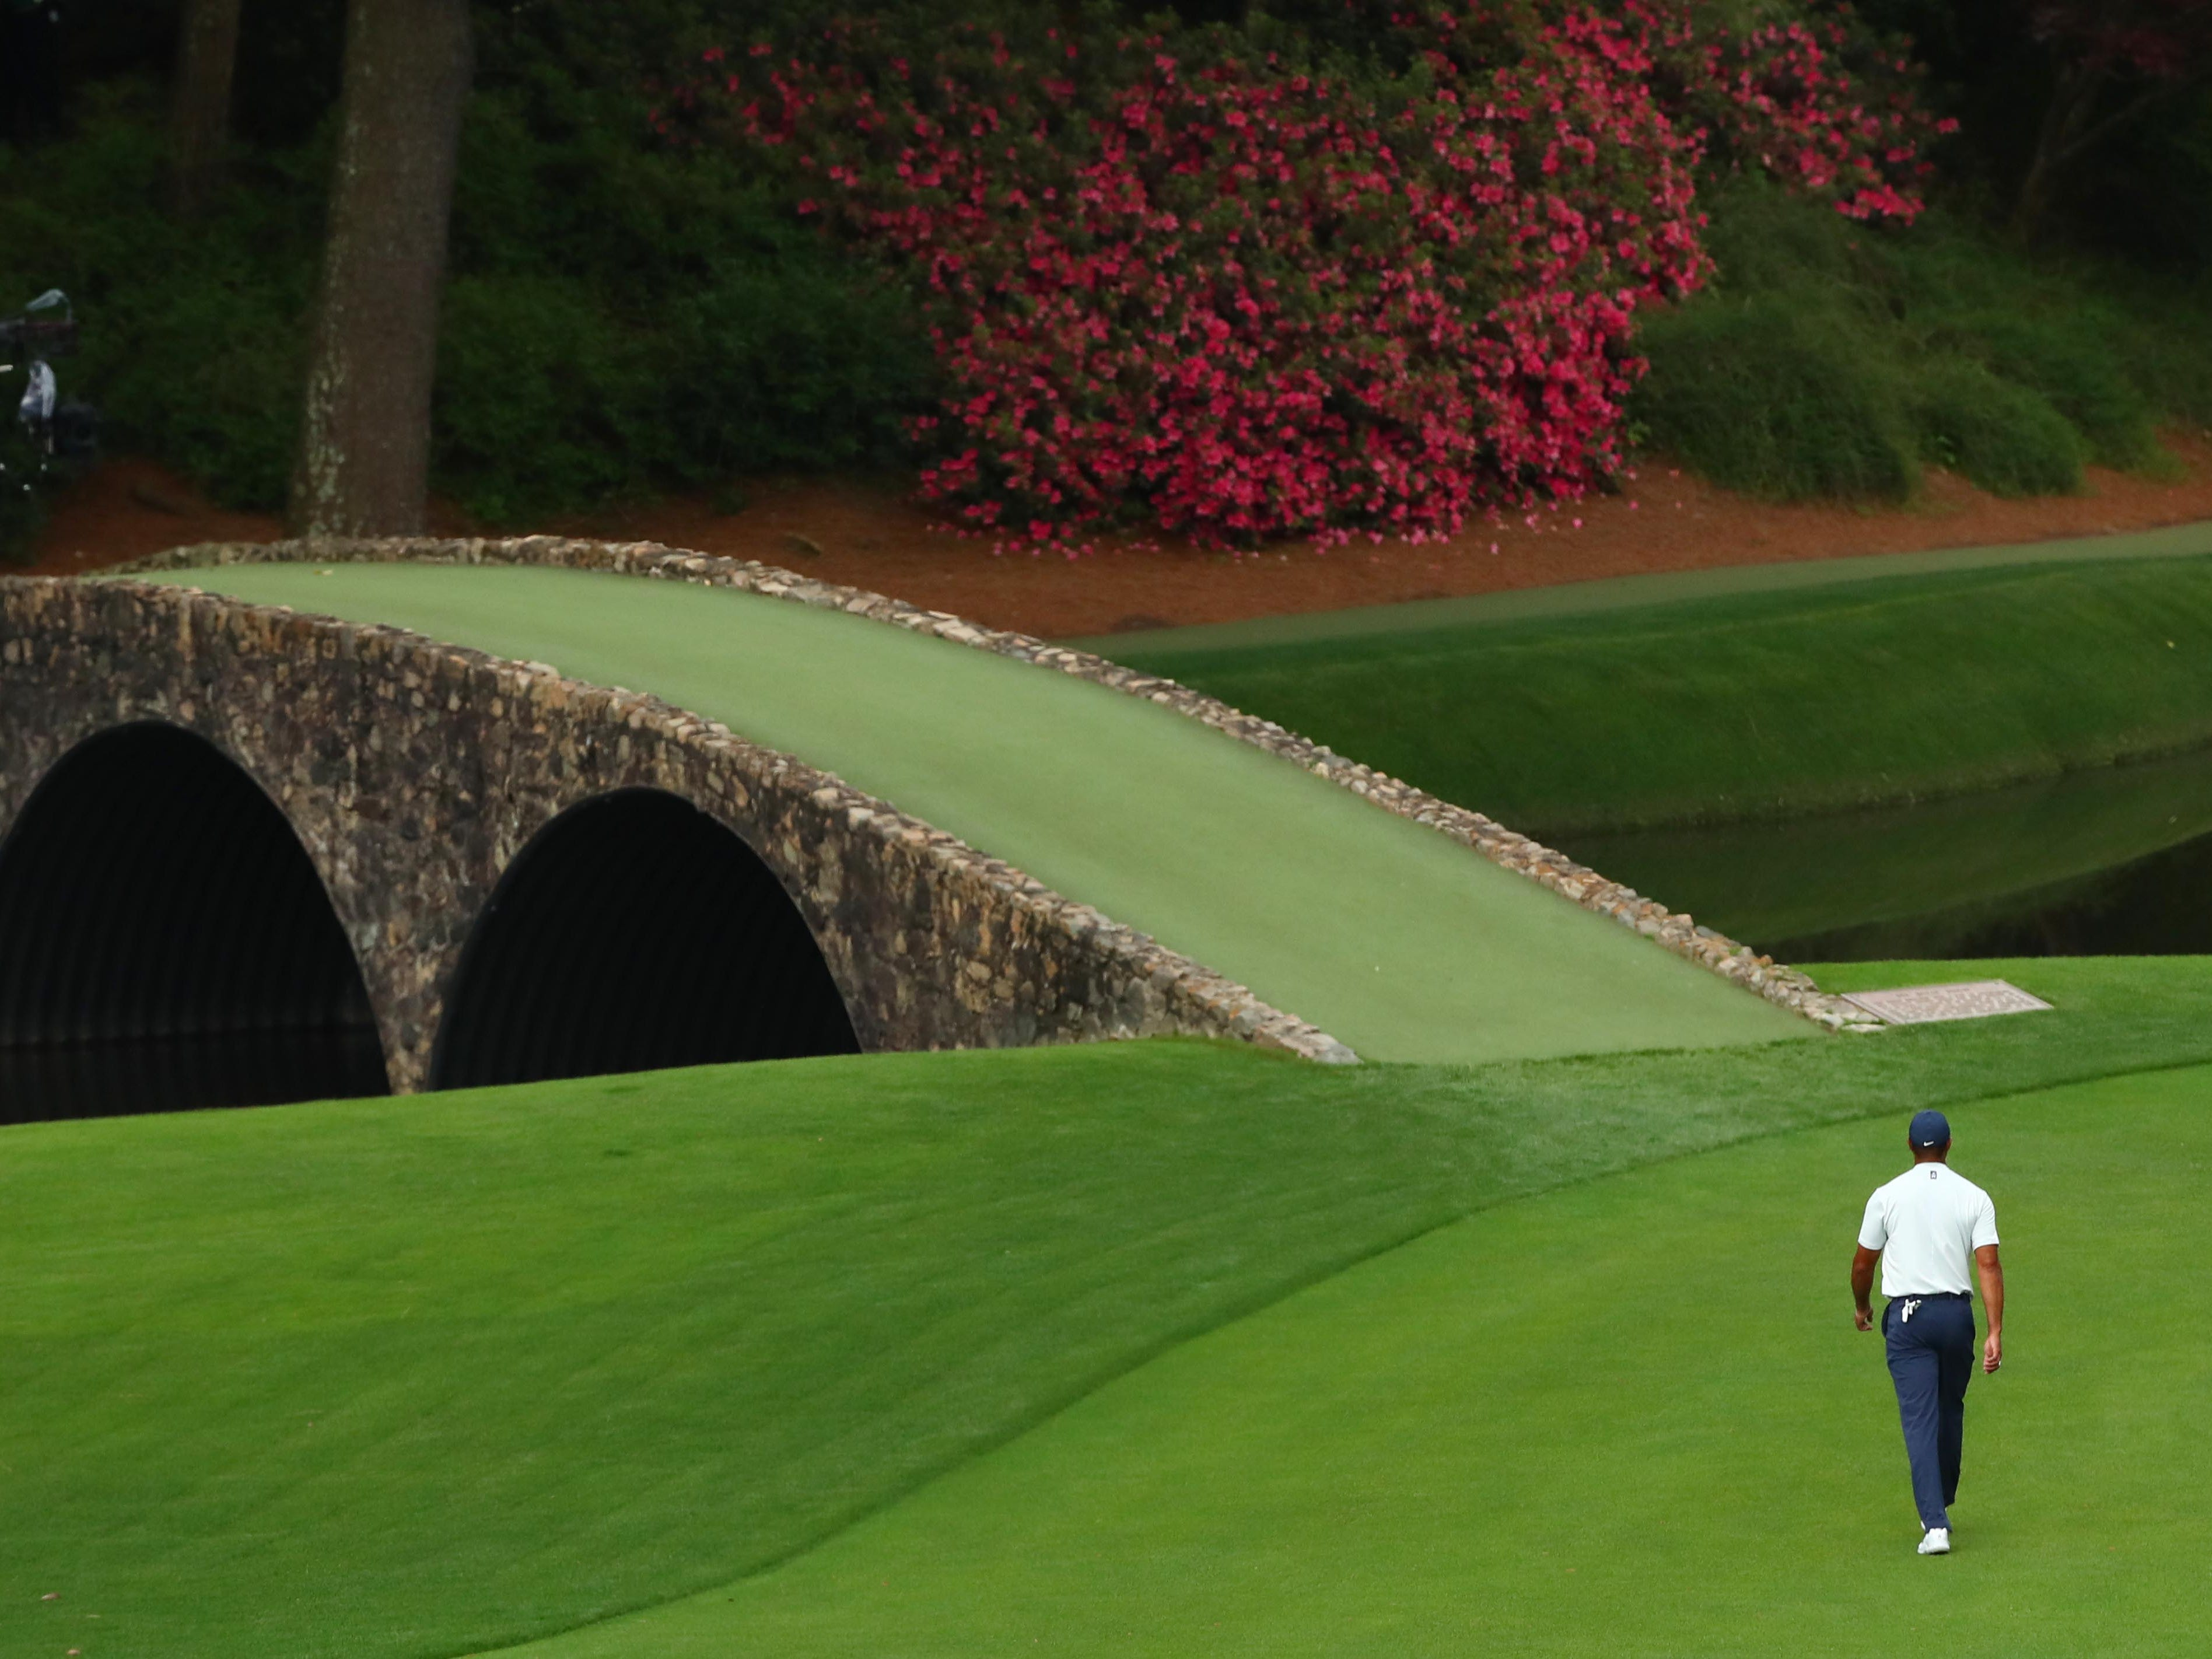 Tiger Woods walks across the Hogan Bridge to mark his ball on the 12th green after play is suspended during the second round of the Masters.